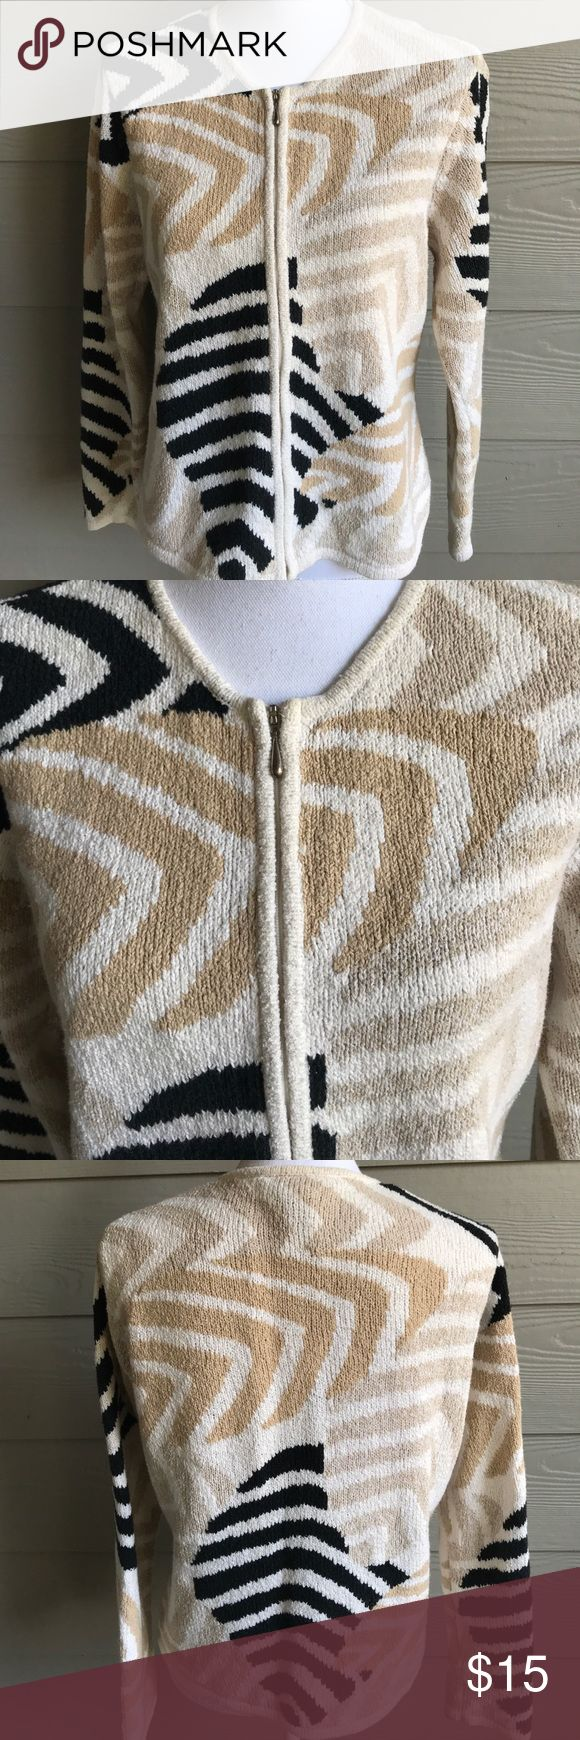 "Talbots zip up sweater. Talbots petites zip up ramie/cotton sweater. Beige, black, tan and cream design. Arm pit to arm pit. 20"".  Sleeve length. 23"". Top to bottom. 23"" Talbots Sweaters Cardigans"